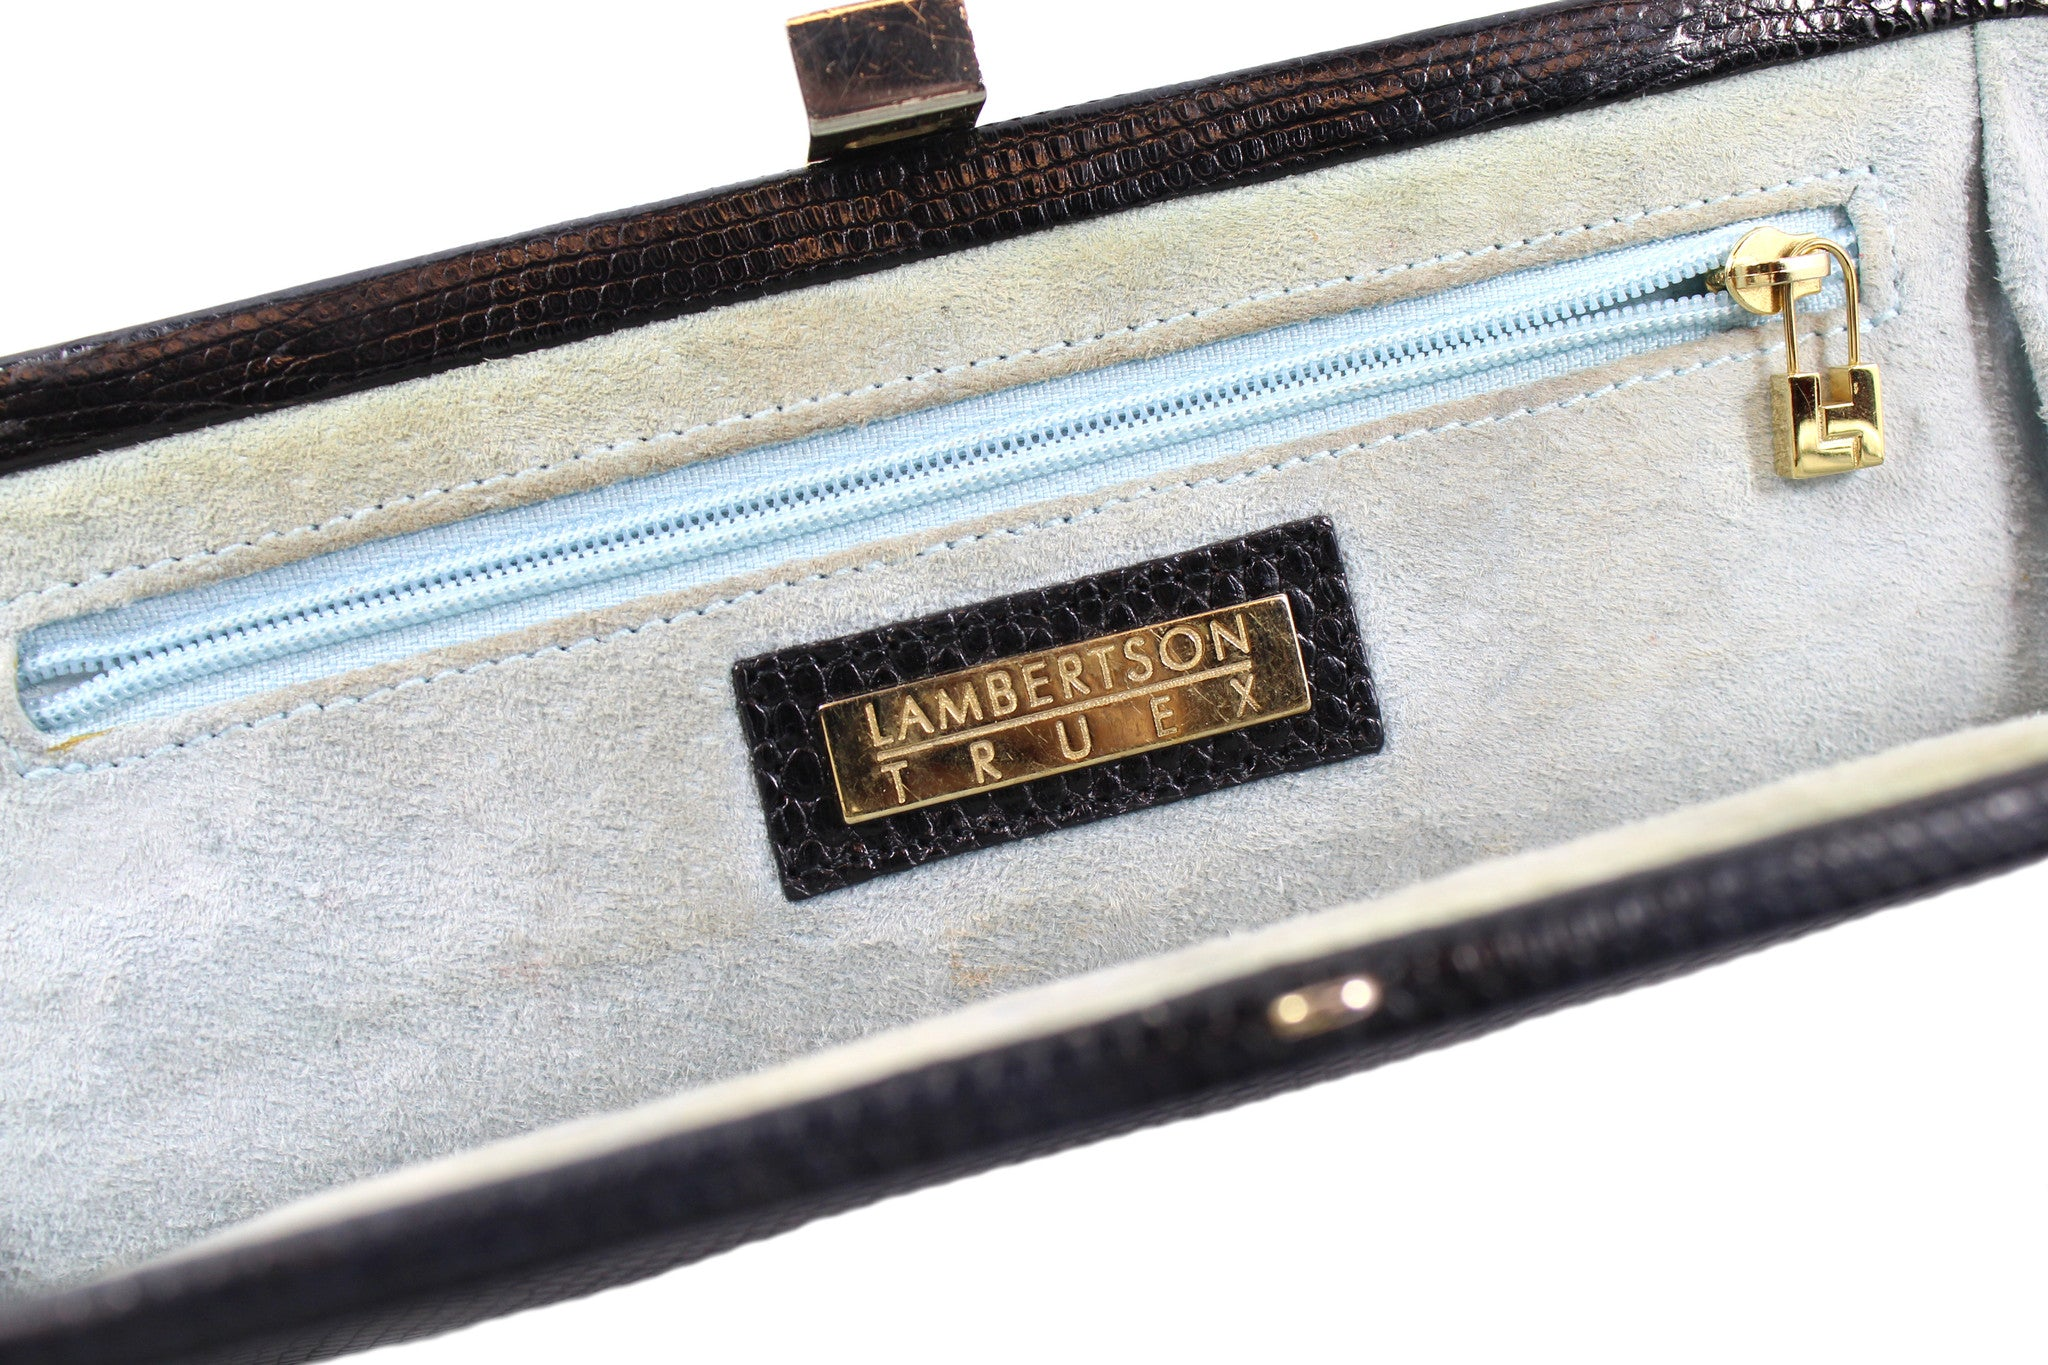 Lambertson Truex Black Lizard Clutch - Encore Consignment - 8